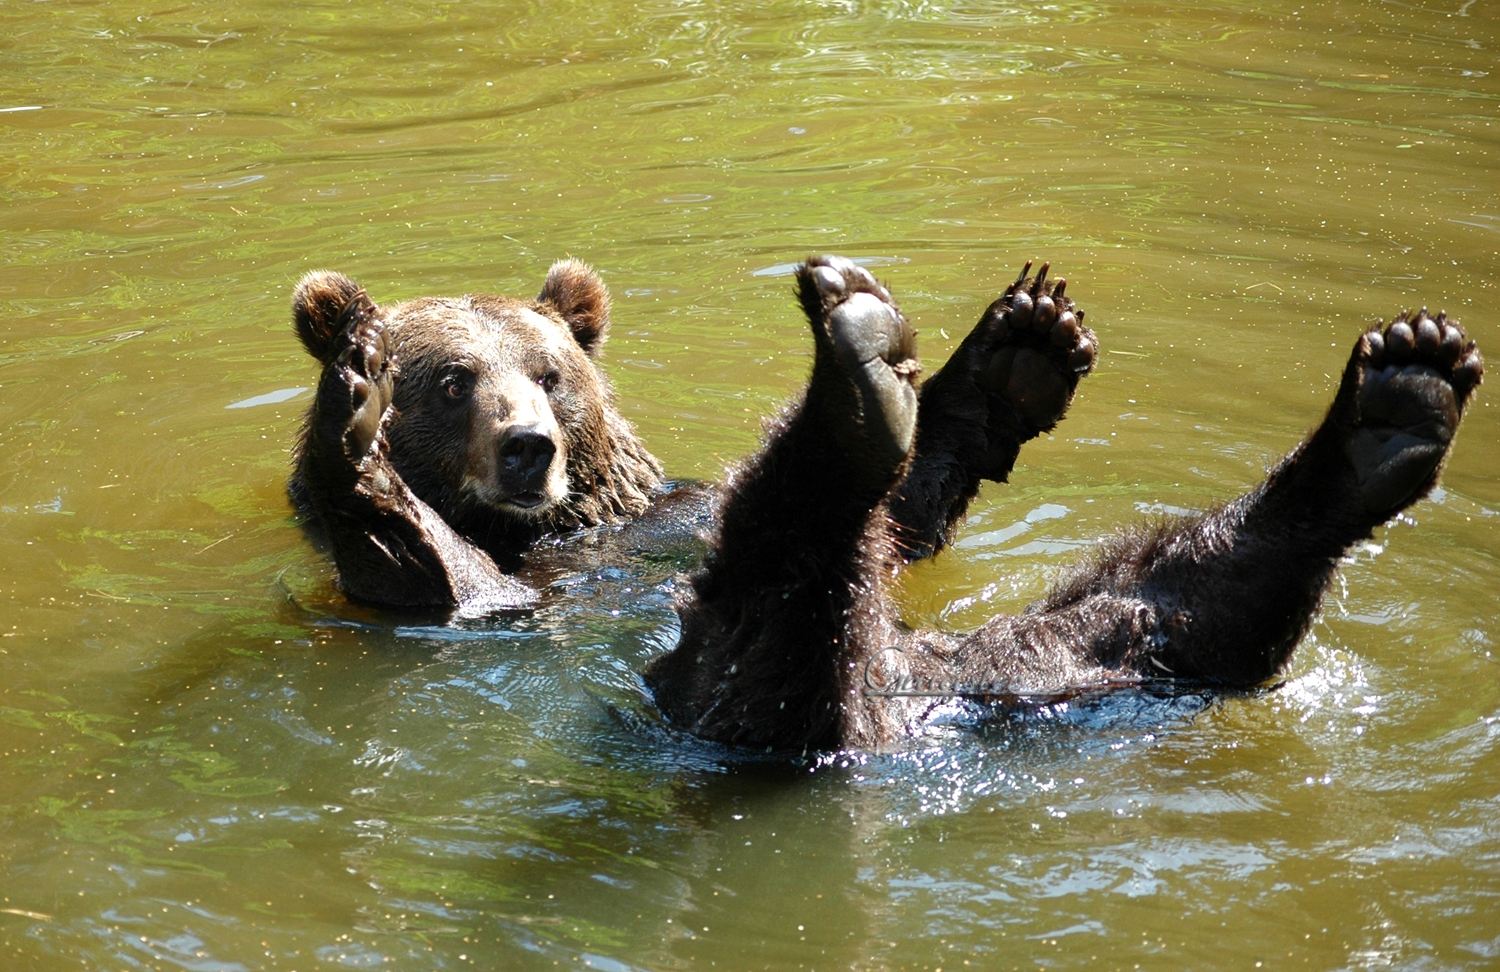 swimming bear link to bear album